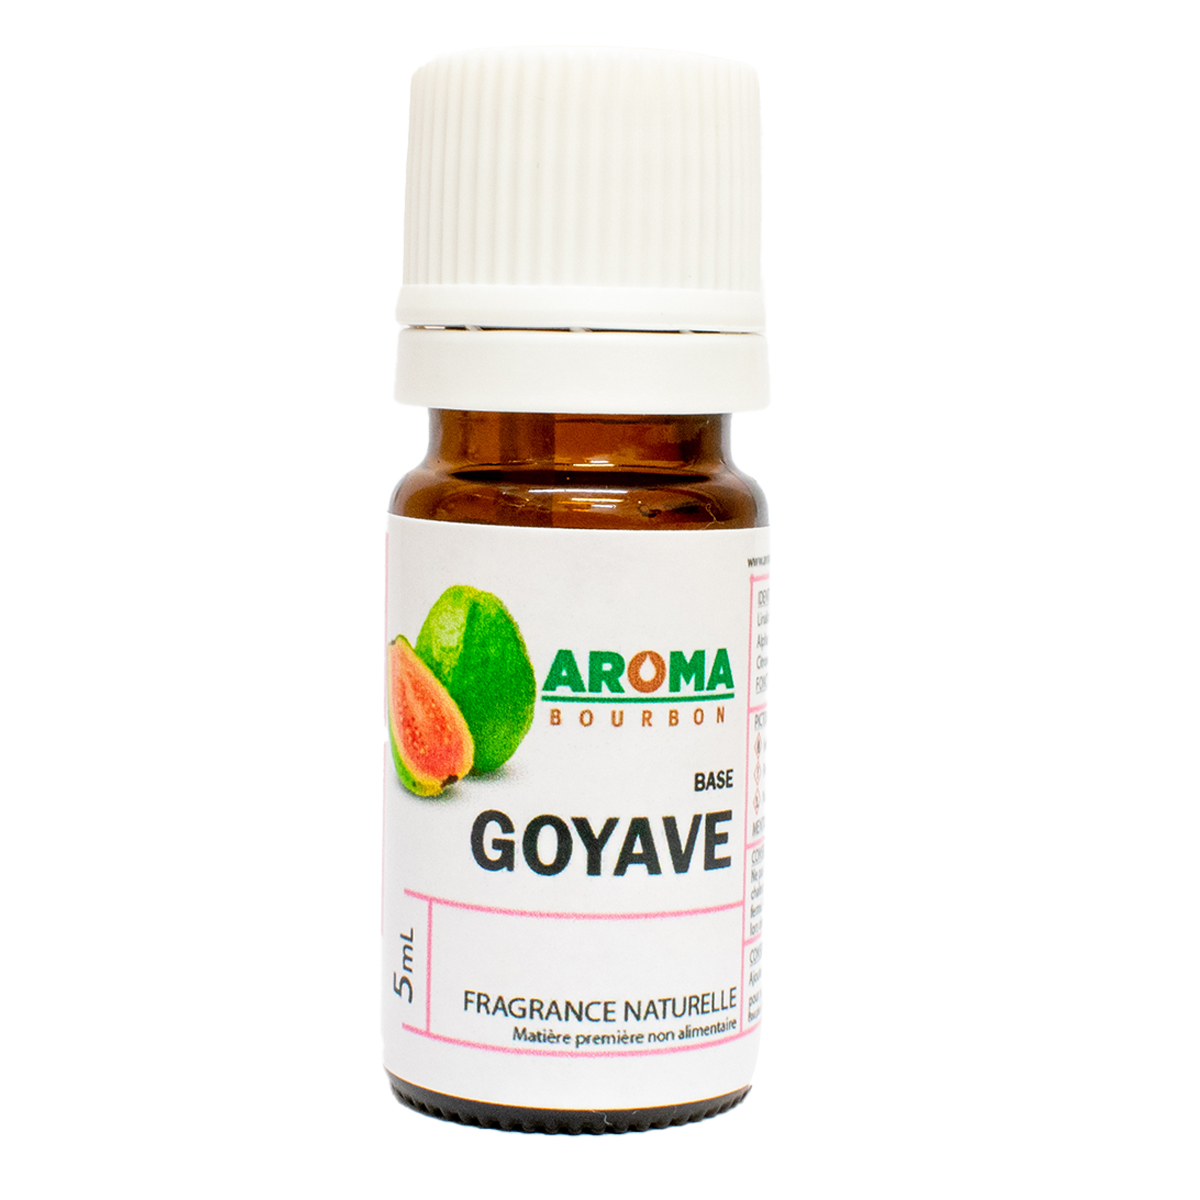 GOYAVE - Fragrance naturelle